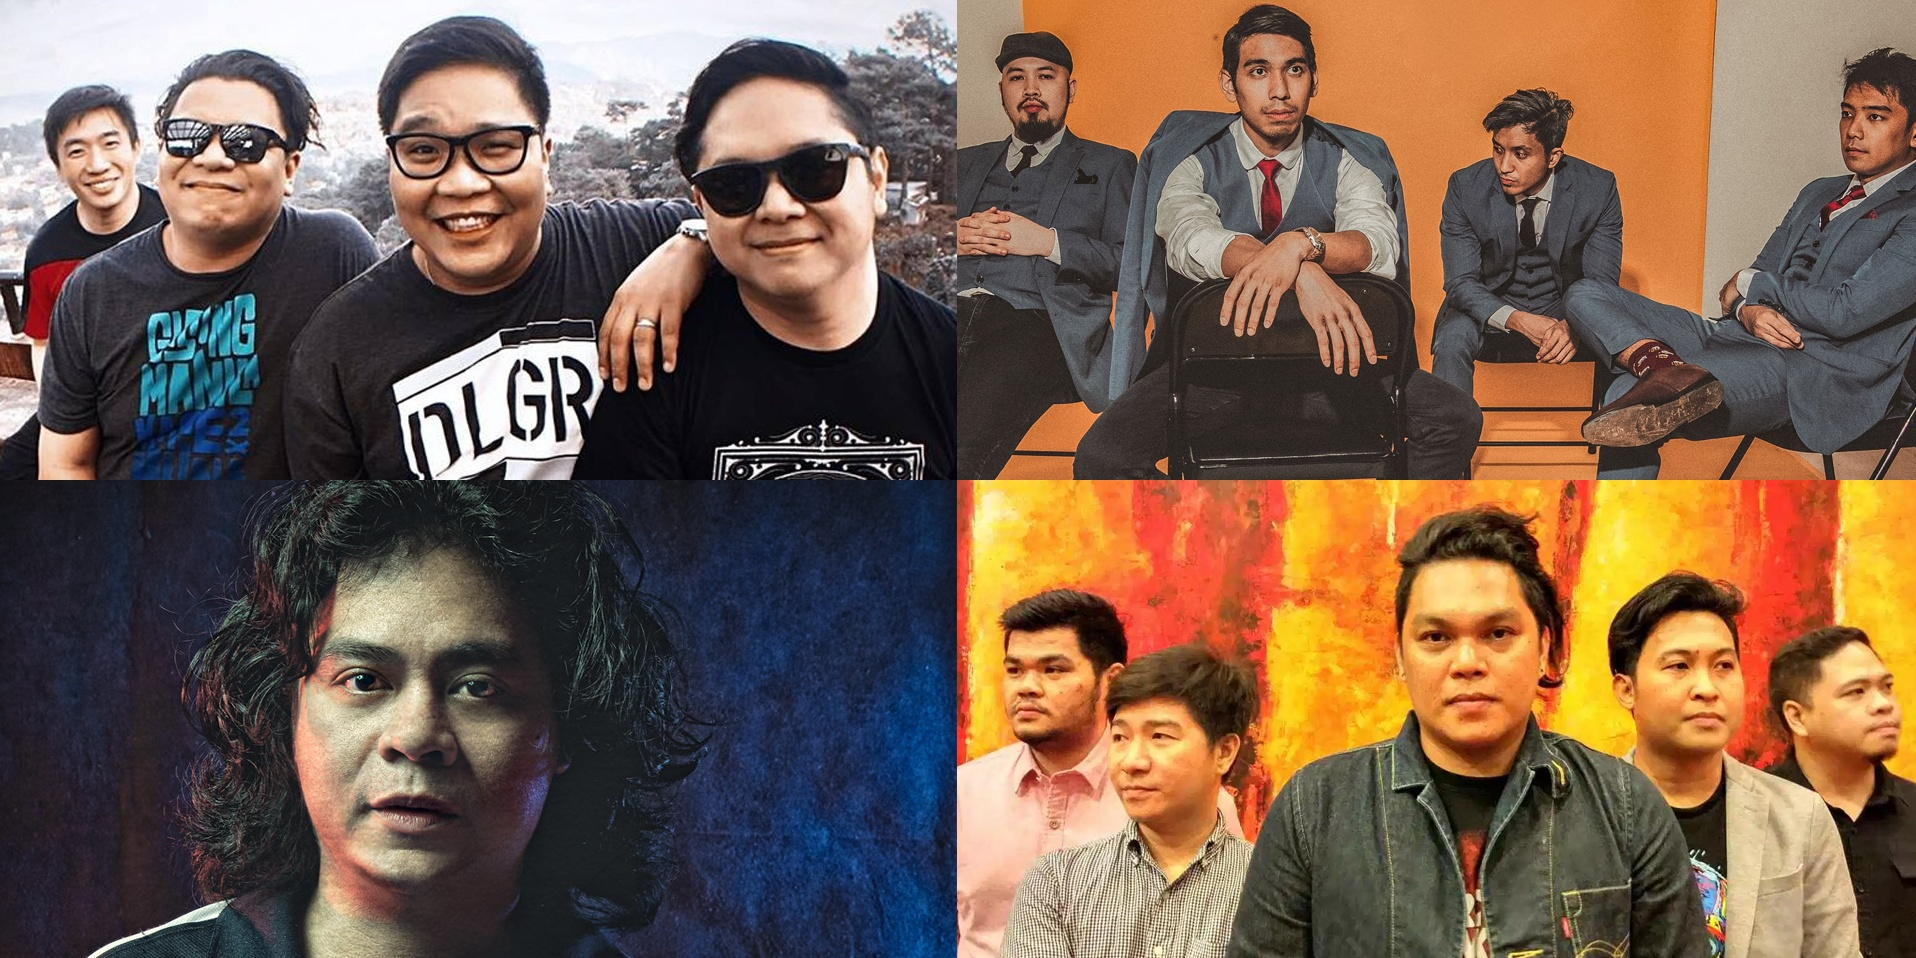 The Itchyworms, The Bloomfields, Kevin Roy's GAP, Silent Sanctuary, and more to perform at Inuman Summit 2019